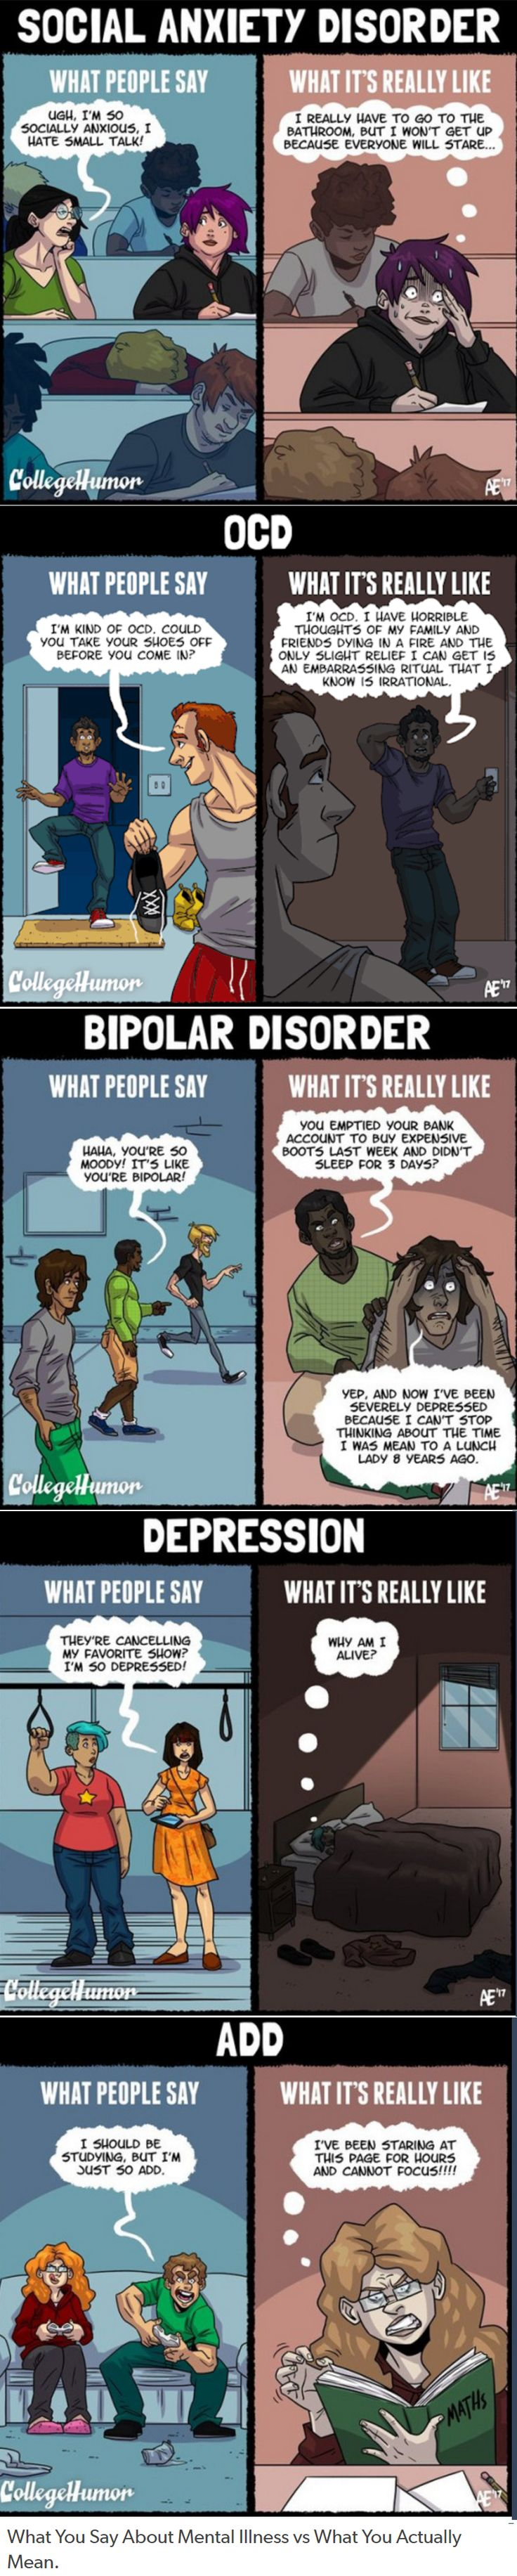 People make light of these disorders, but they don't understand what they're really like (myself included)